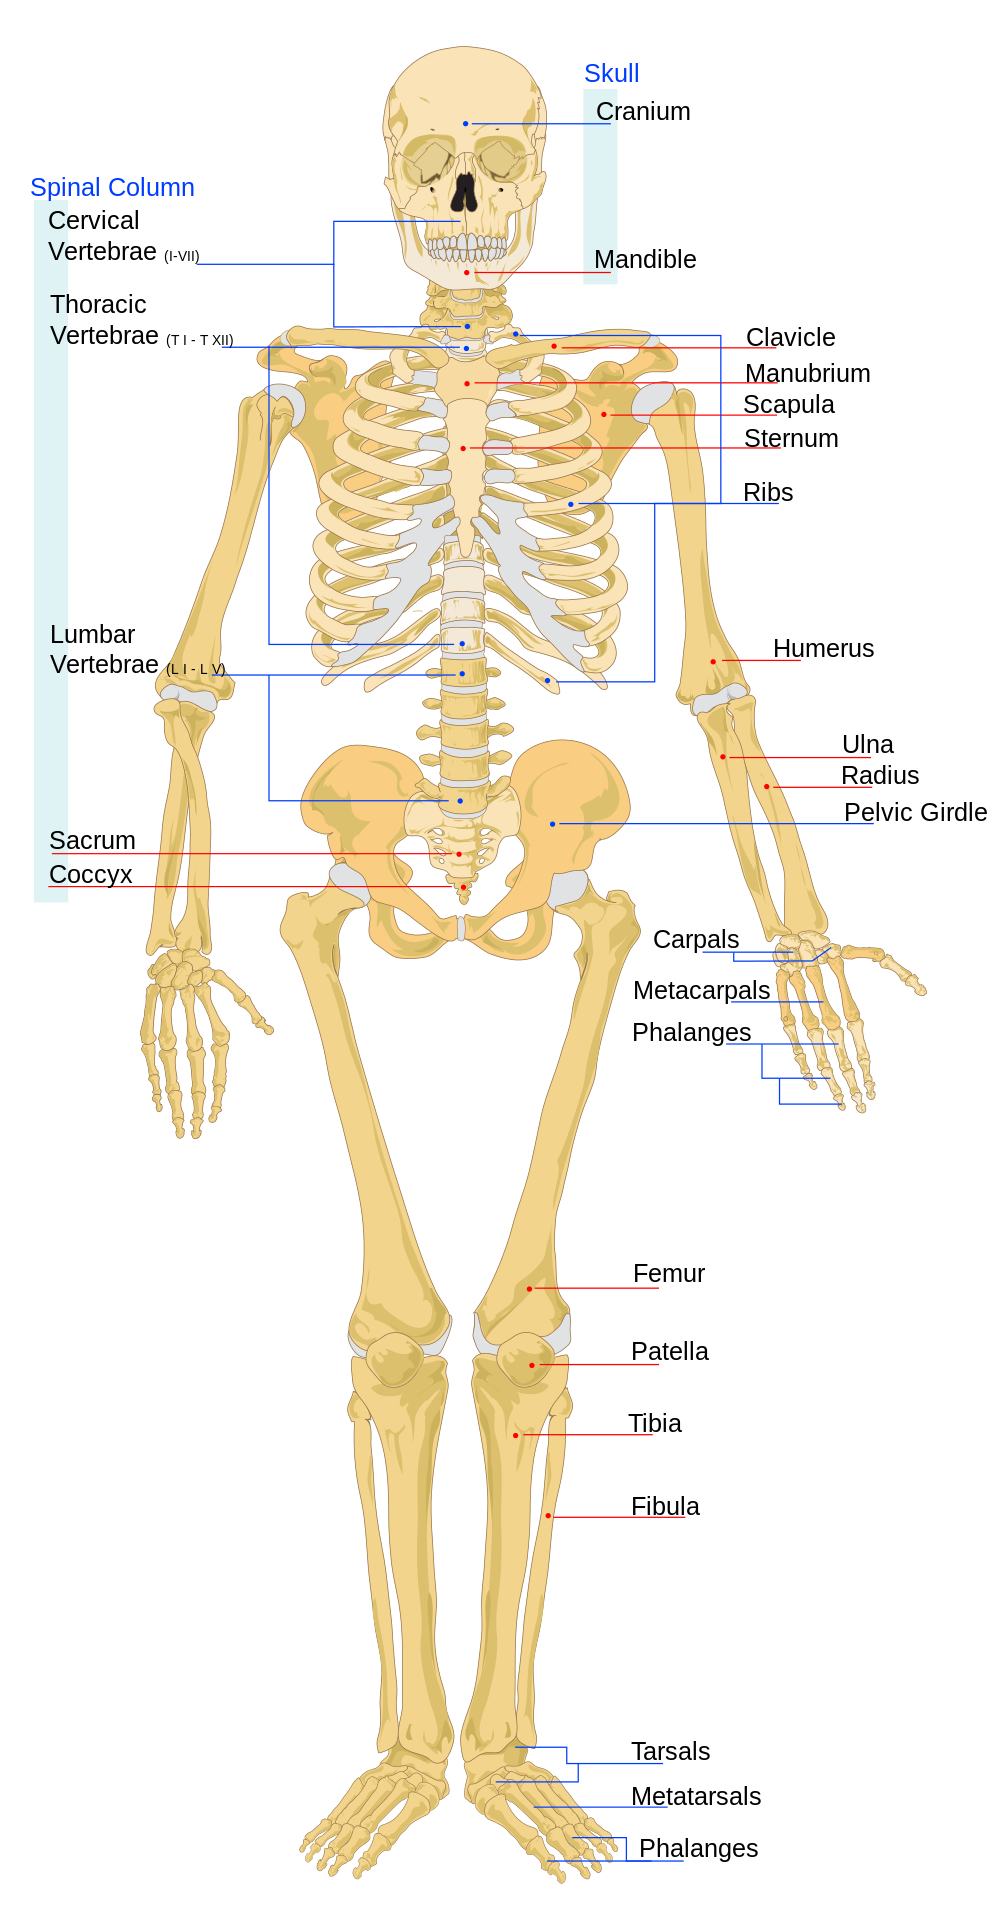 Using Skeletal System Interactive to Learn Skeletal System | Anatomy ...